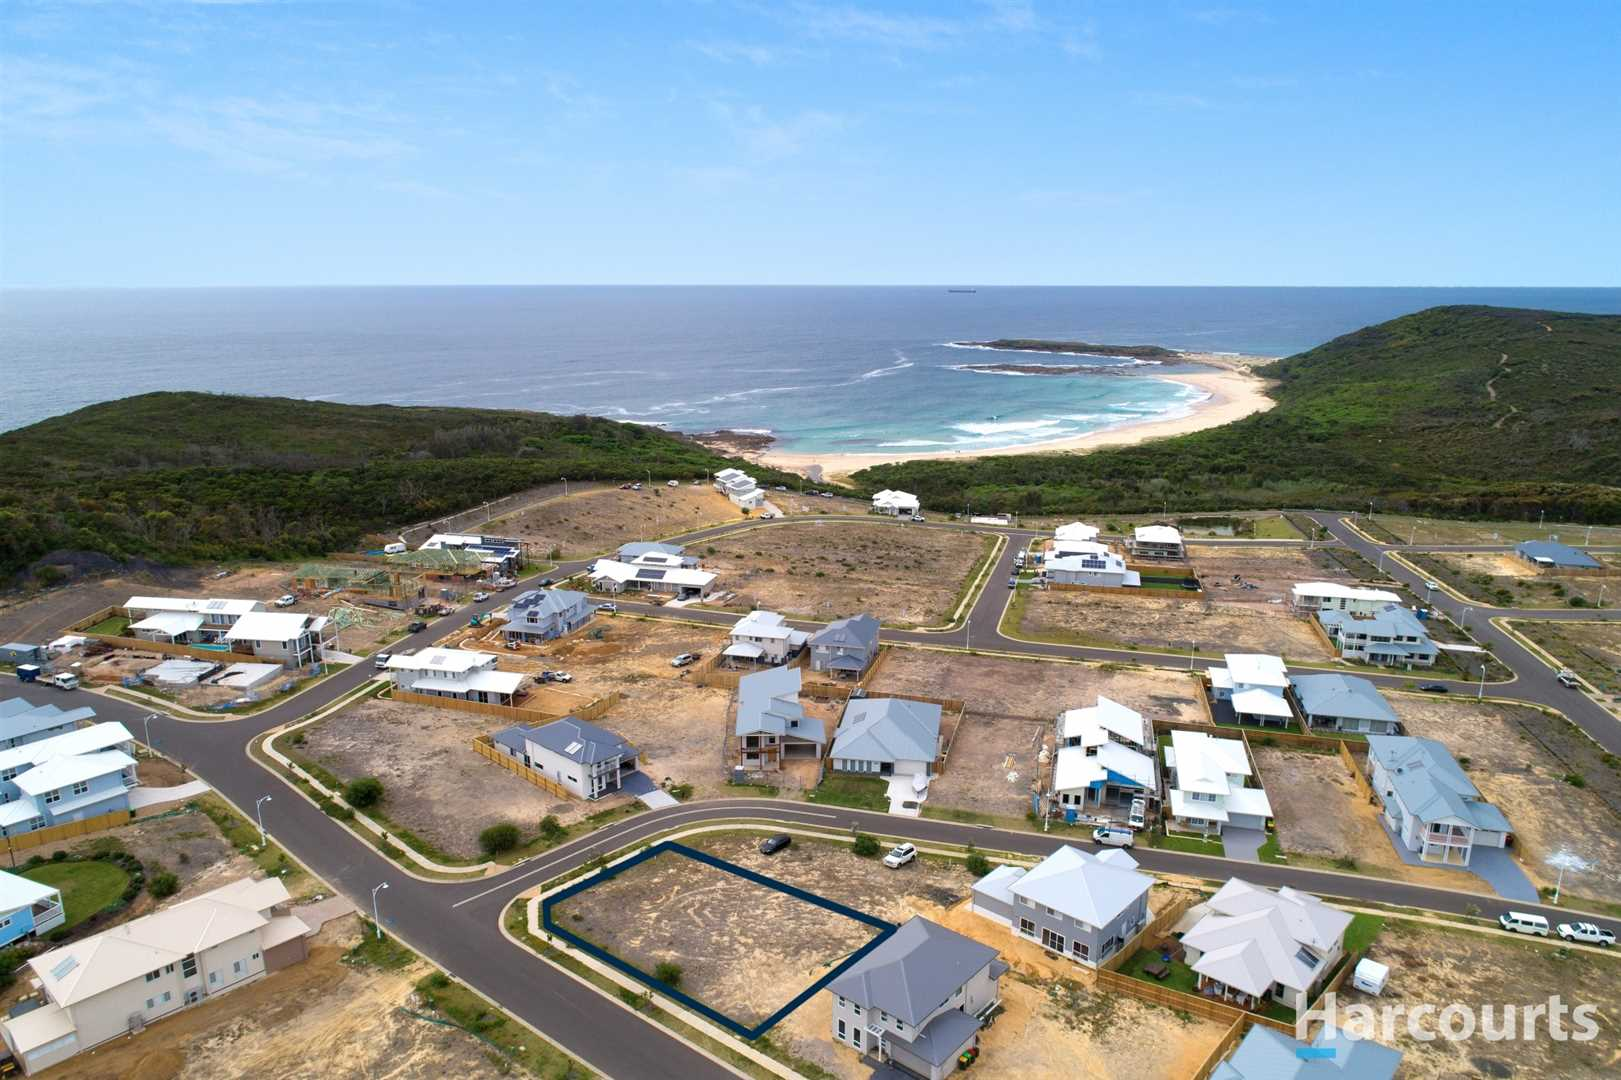 Build Your Dream Home at 'Beaches' Catherine Hill Bay